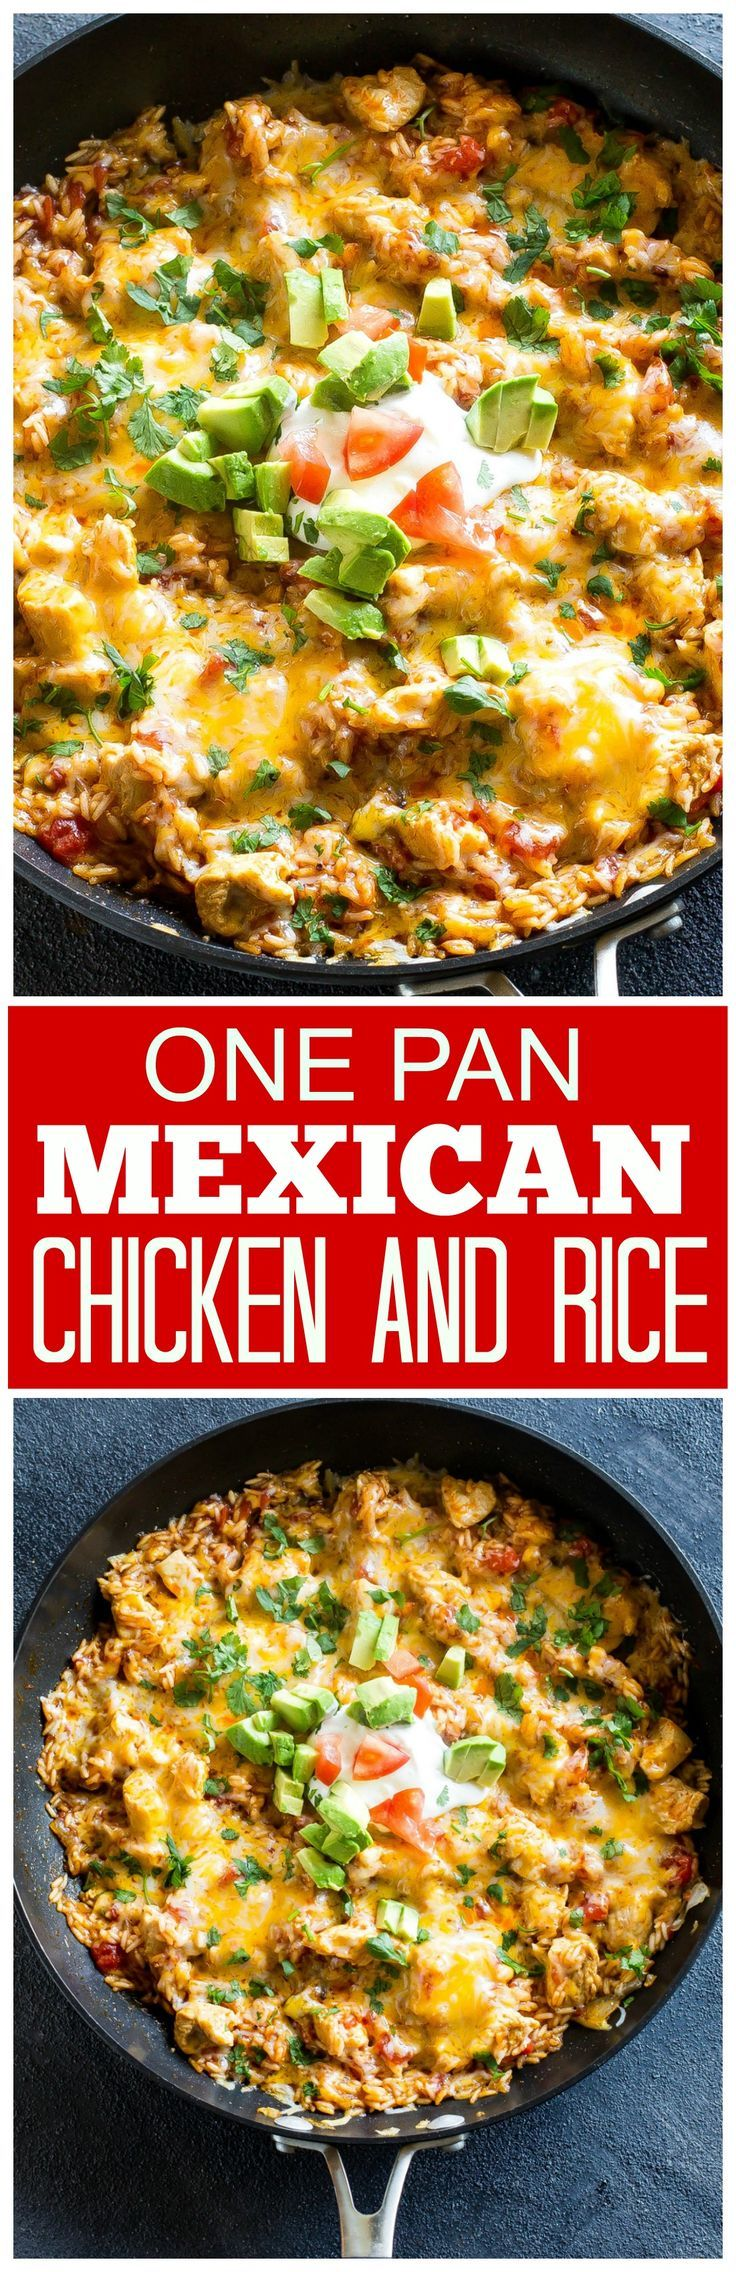 One Pan Mexican Chicken and Rice - an easy dinner ready in under 30 minutes!